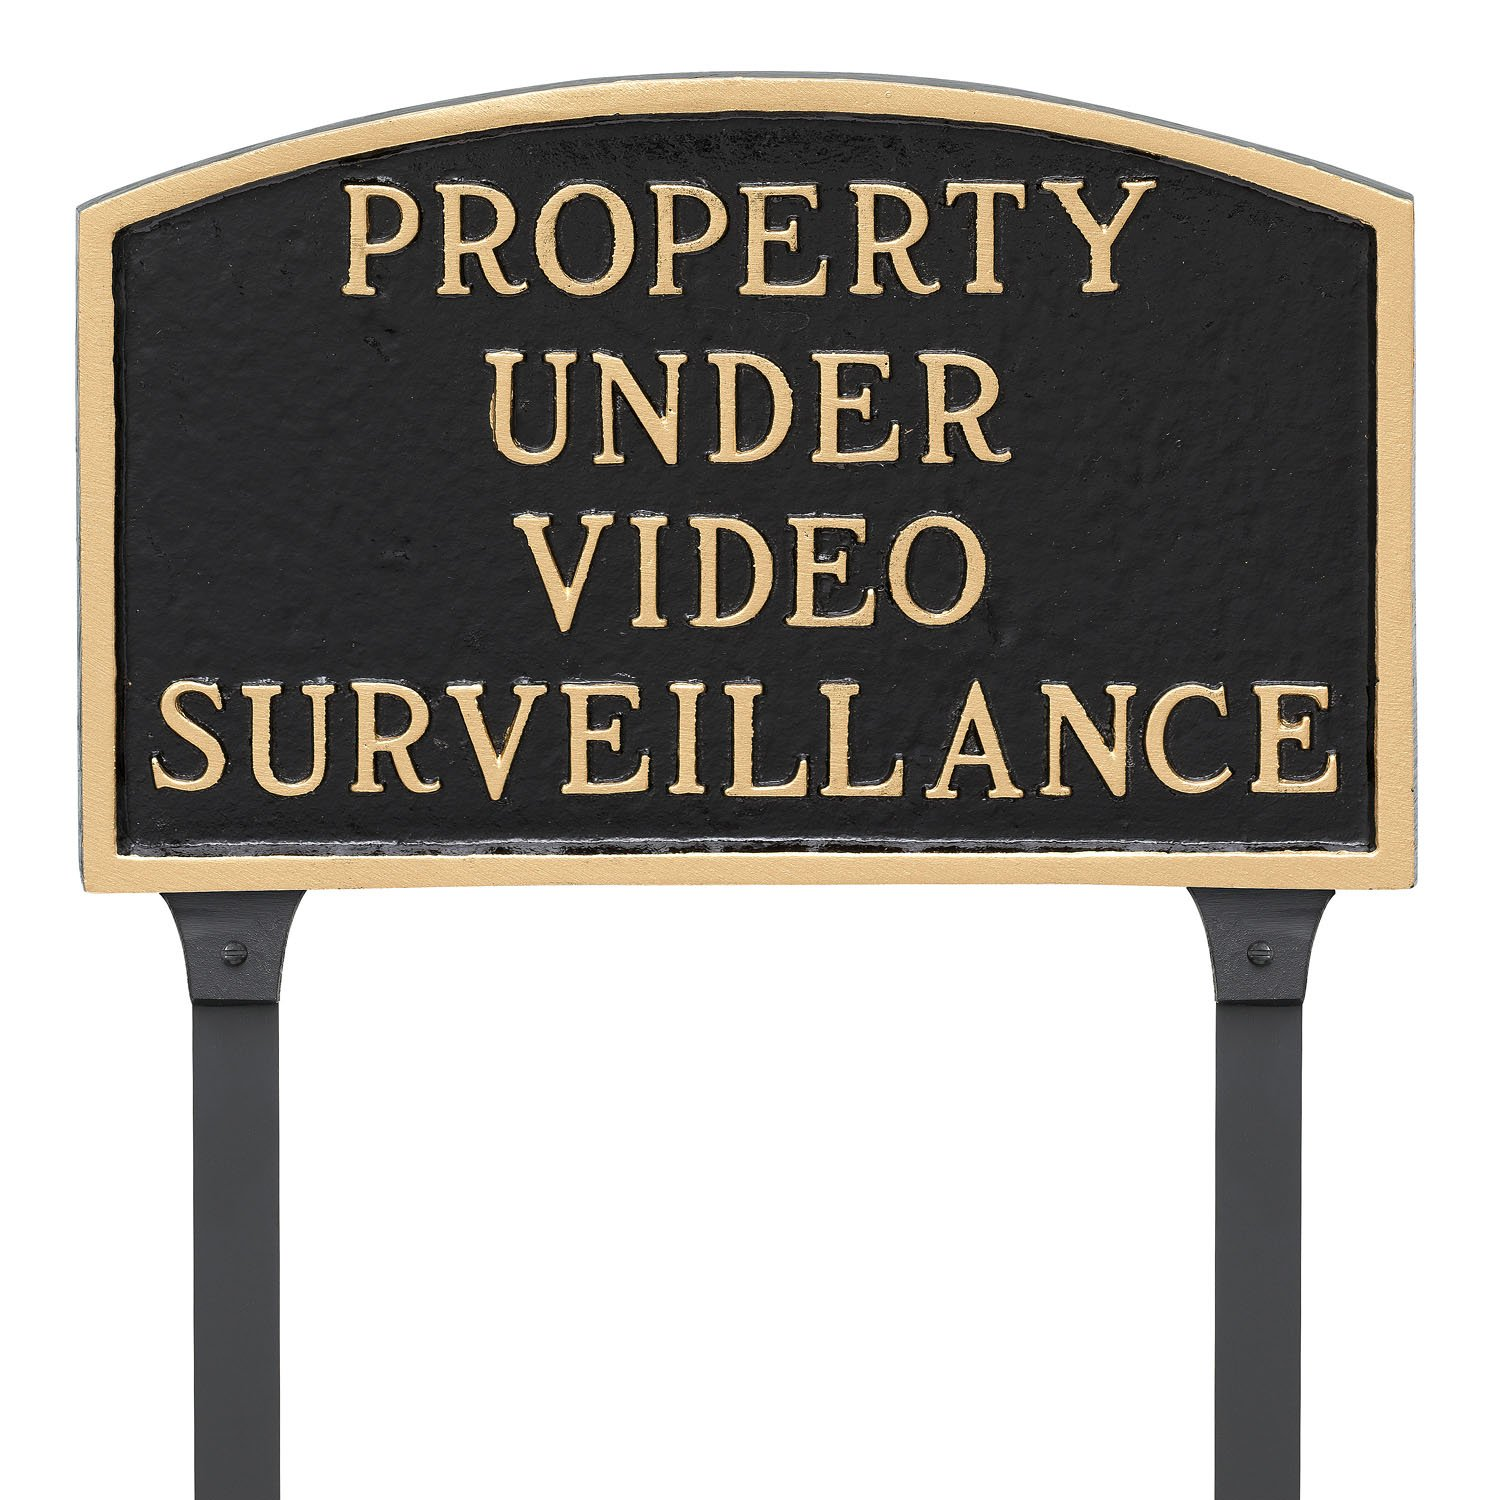 Montague Metal Products 13'' x 21'' Property Under Video Surveillance Statement Plaque & 23'' Stake, Black/Gold